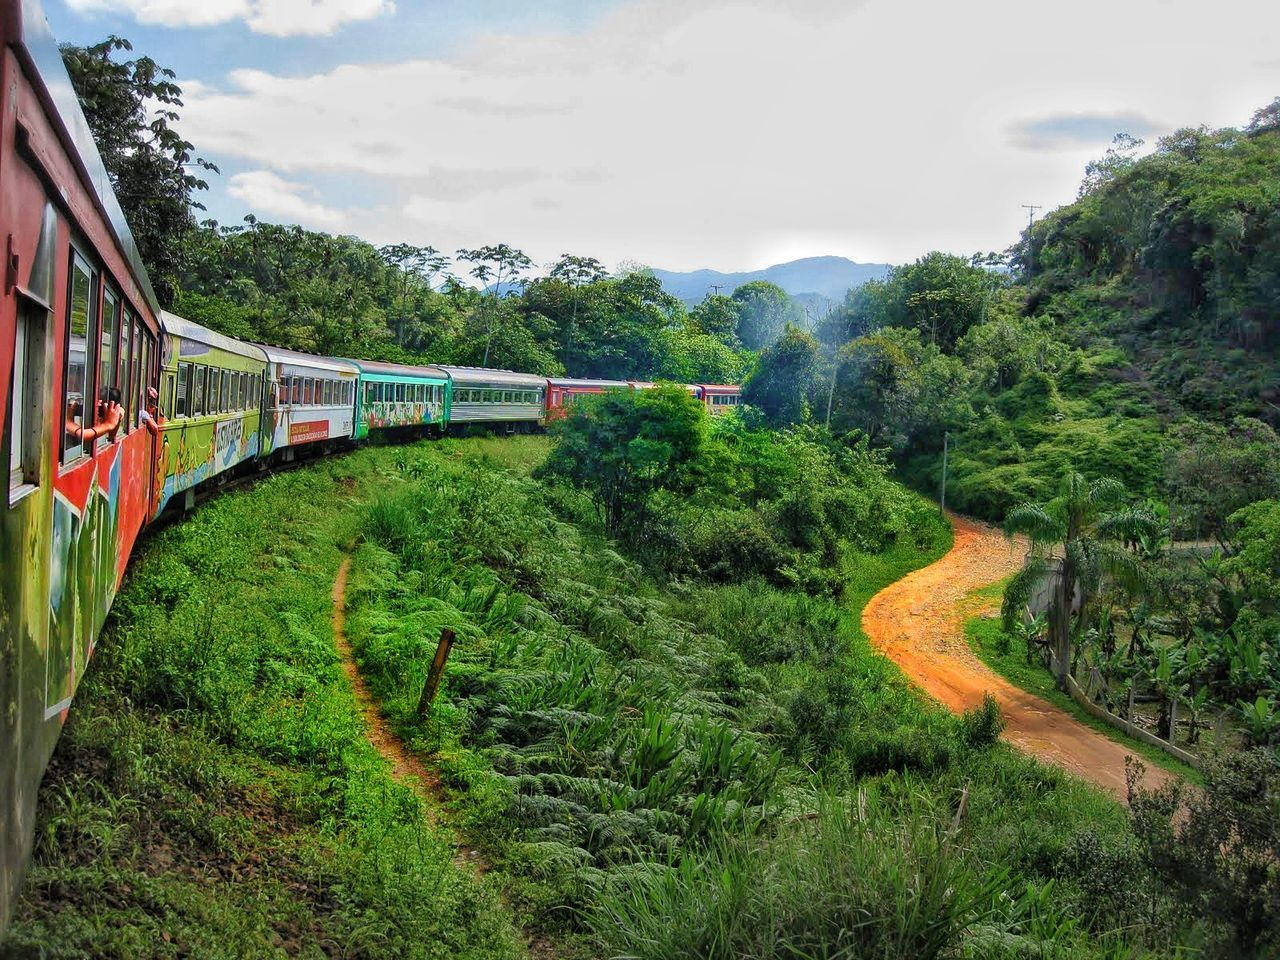 Transportation Green Color Grass Nature Sky Beauty In Nature Outdoors Train Trainphotography Brasil Serra Verde Express Paranaguá Lifestyle Jungle Eyem Gallery Traveling Travel Lifestyles Travel Destinations Forest Finding New Frontiers Traveling Home For The Holidays